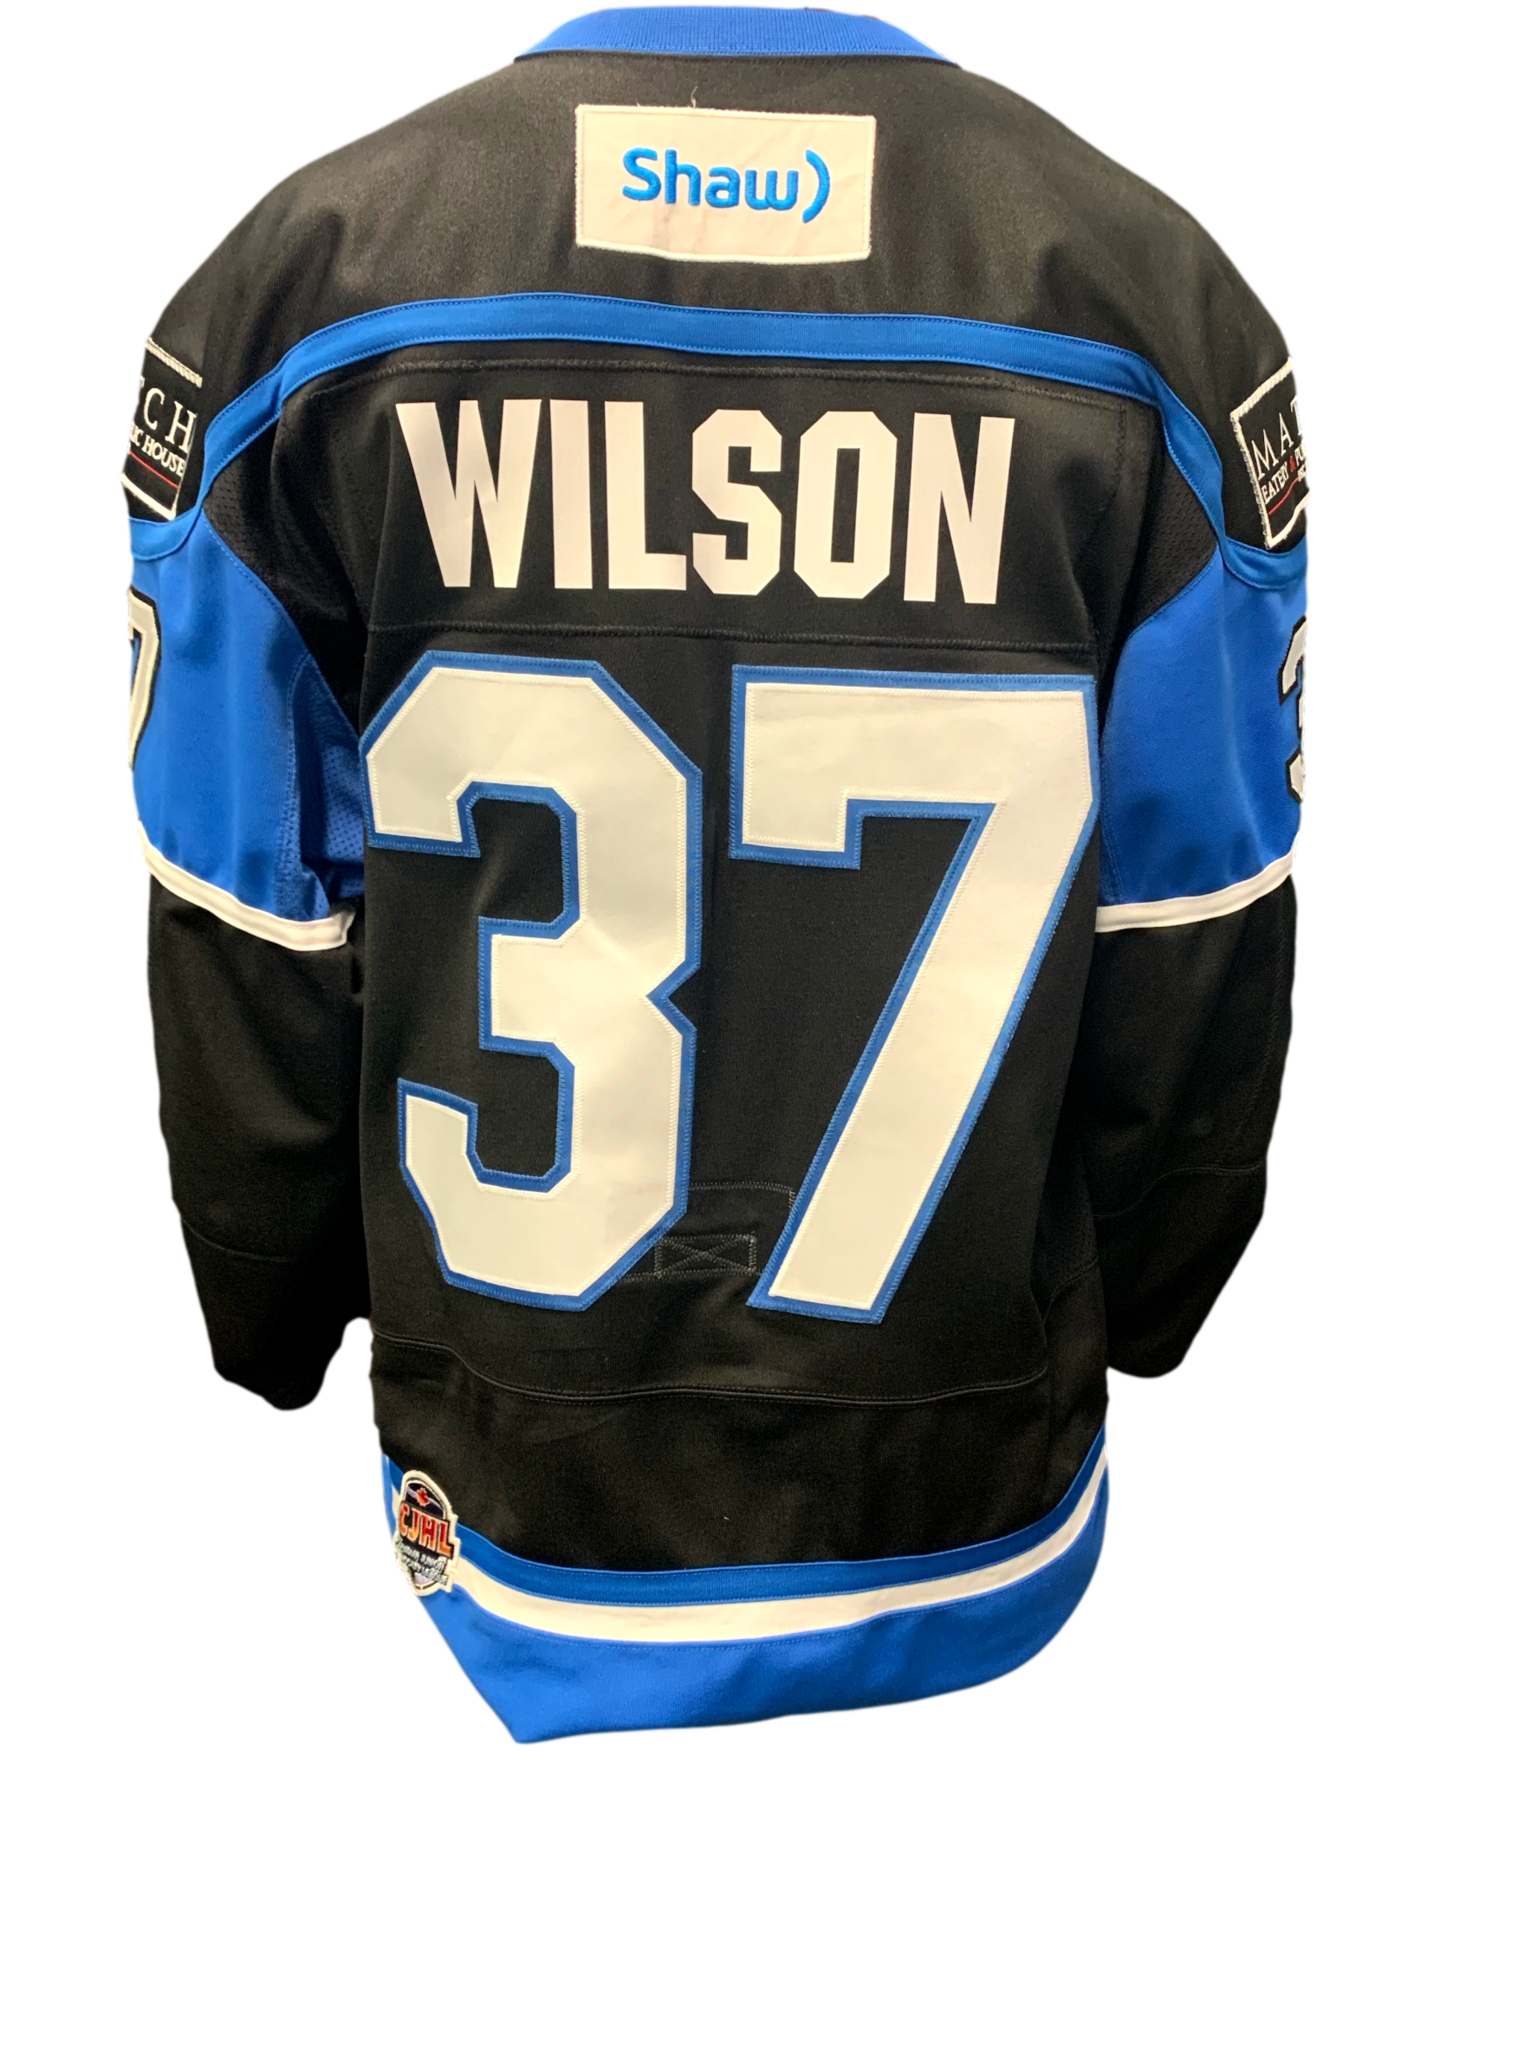 Bauer Wilson Game Worn Jersey - teamed signed